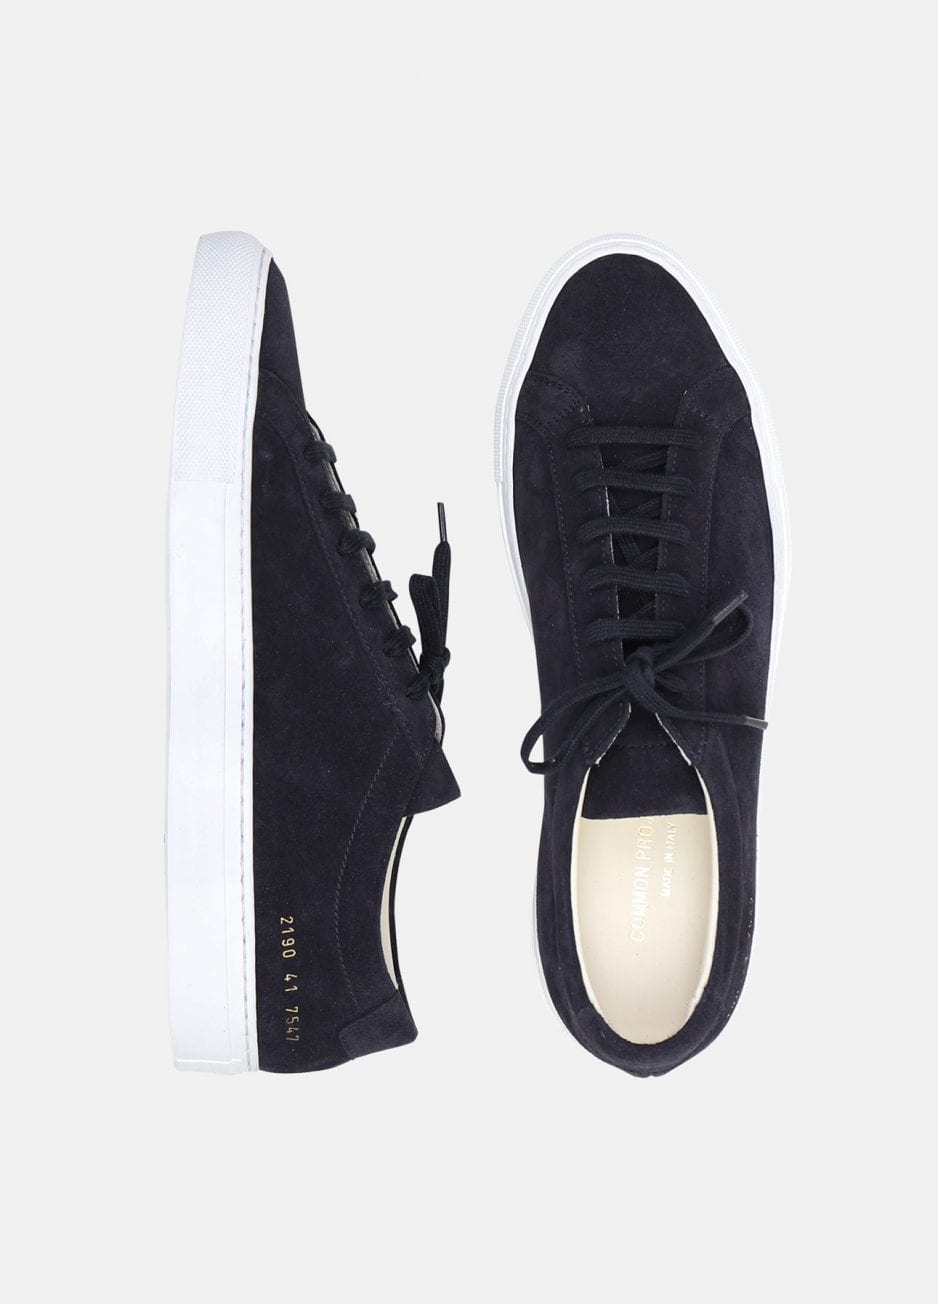 Projects Common Projects Troelstrup Common Common Troelstrup Troelstrup Troelstrup Projects Troelstrup Projects Common Common Common Projects wv8NnOm0